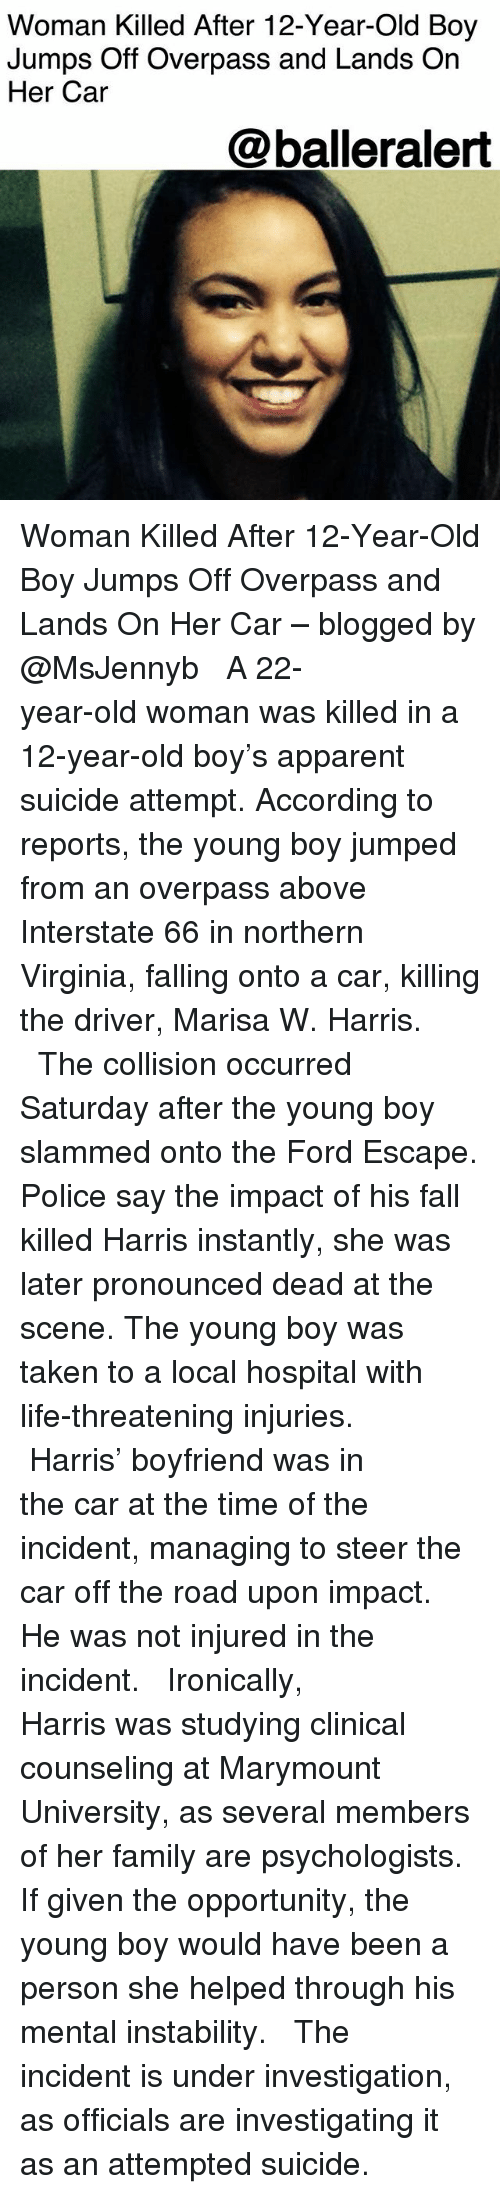 jumps off: Woman Killed After 12-Year-Old Boy  Jumps Off Overpass and Lands On  Her Car  @balleralert Woman Killed After 12-Year-Old Boy Jumps Off Overpass and Lands On Her Car – blogged by @MsJennyb ⠀⠀⠀⠀⠀⠀⠀ ⠀⠀⠀⠀⠀⠀⠀ A 22-year-old woman was killed in a 12-year-old boy's apparent suicide attempt. According to reports, the young boy jumped from an overpass above Interstate 66 in northern Virginia, falling onto a car, killing the driver, Marisa W. Harris. ⠀⠀⠀⠀⠀⠀⠀ ⠀⠀⠀⠀⠀⠀⠀ The collision occurred Saturday after the young boy slammed onto the Ford Escape. Police say the impact of his fall killed Harris instantly, she was later pronounced dead at the scene. The young boy was taken to a local hospital with life-threatening injuries. ⠀⠀⠀⠀⠀⠀⠀ ⠀⠀⠀⠀⠀⠀⠀ Harris' boyfriend was in the car at the time of the incident, managing to steer the car off the road upon impact. He was not injured in the incident. ⠀⠀⠀⠀⠀⠀⠀ ⠀⠀⠀⠀⠀⠀⠀ Ironically, Harris was studying clinical counseling at Marymount University, as several members of her family are psychologists. If given the opportunity, the young boy would have been a person she helped through his mental instability. ⠀⠀⠀⠀⠀⠀⠀ ⠀⠀⠀⠀⠀⠀⠀ The incident is under investigation, as officials are investigating it as an attempted suicide.